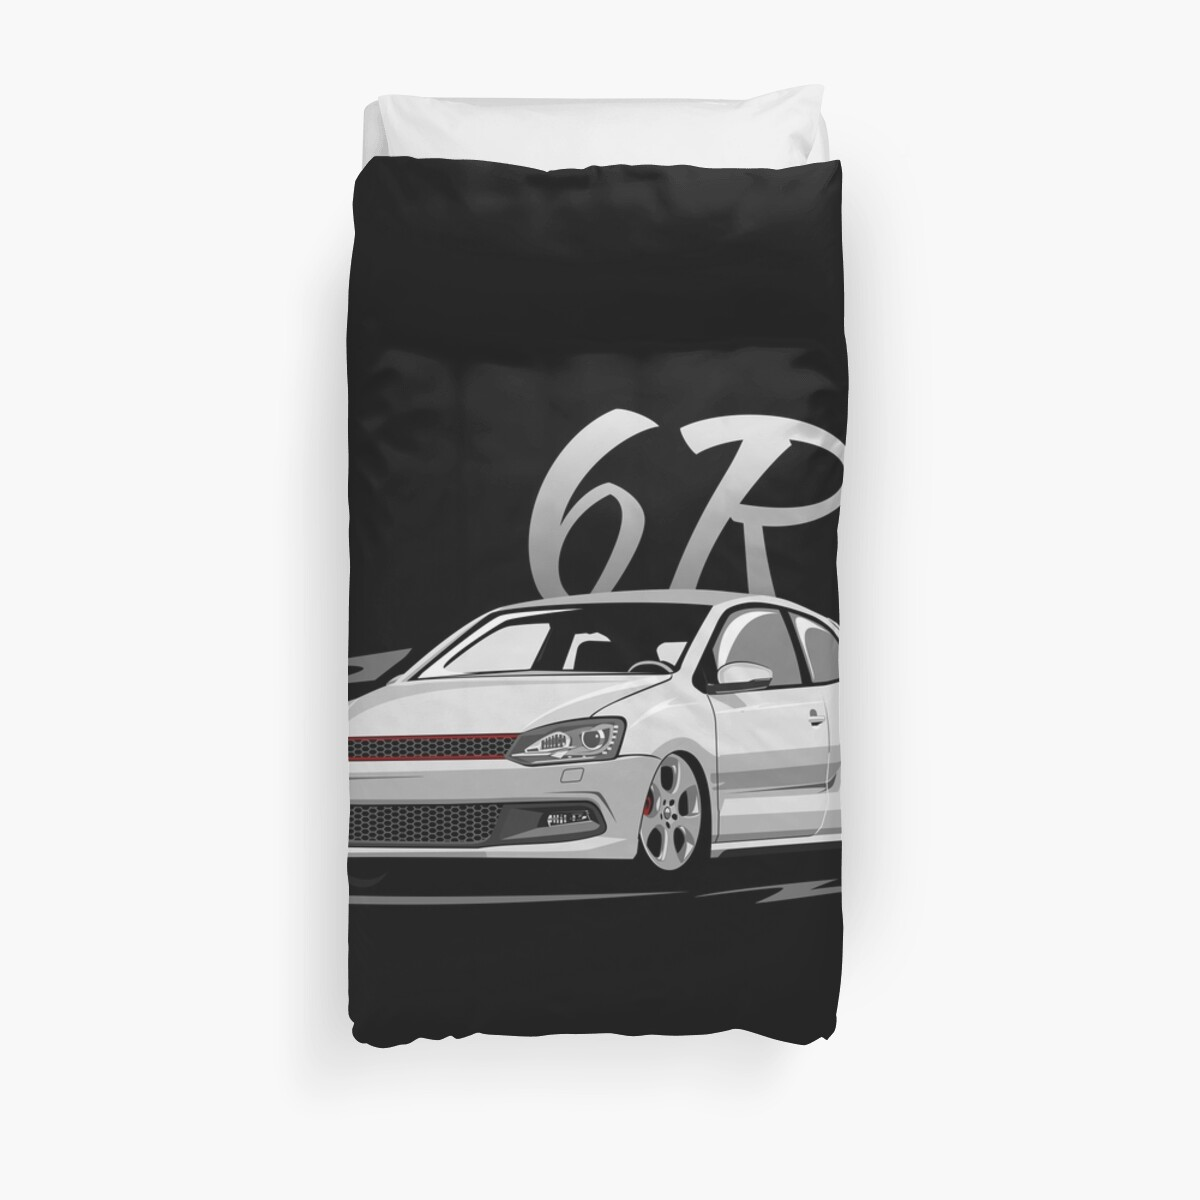 Polo 6R GTI & quot; Low Style & quot; by glstkrrn